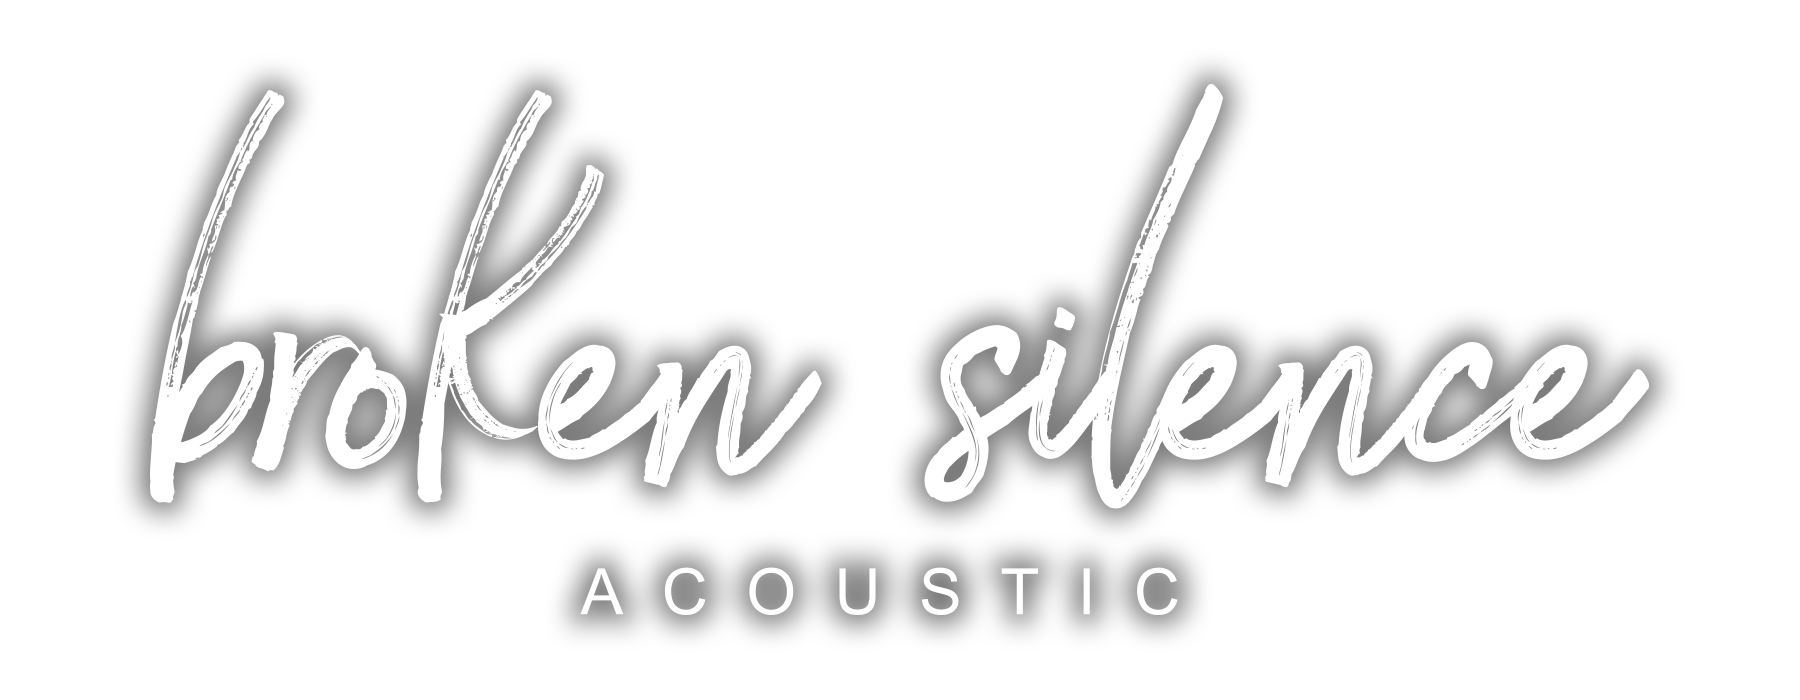 Broken Silence Acoustic - Band